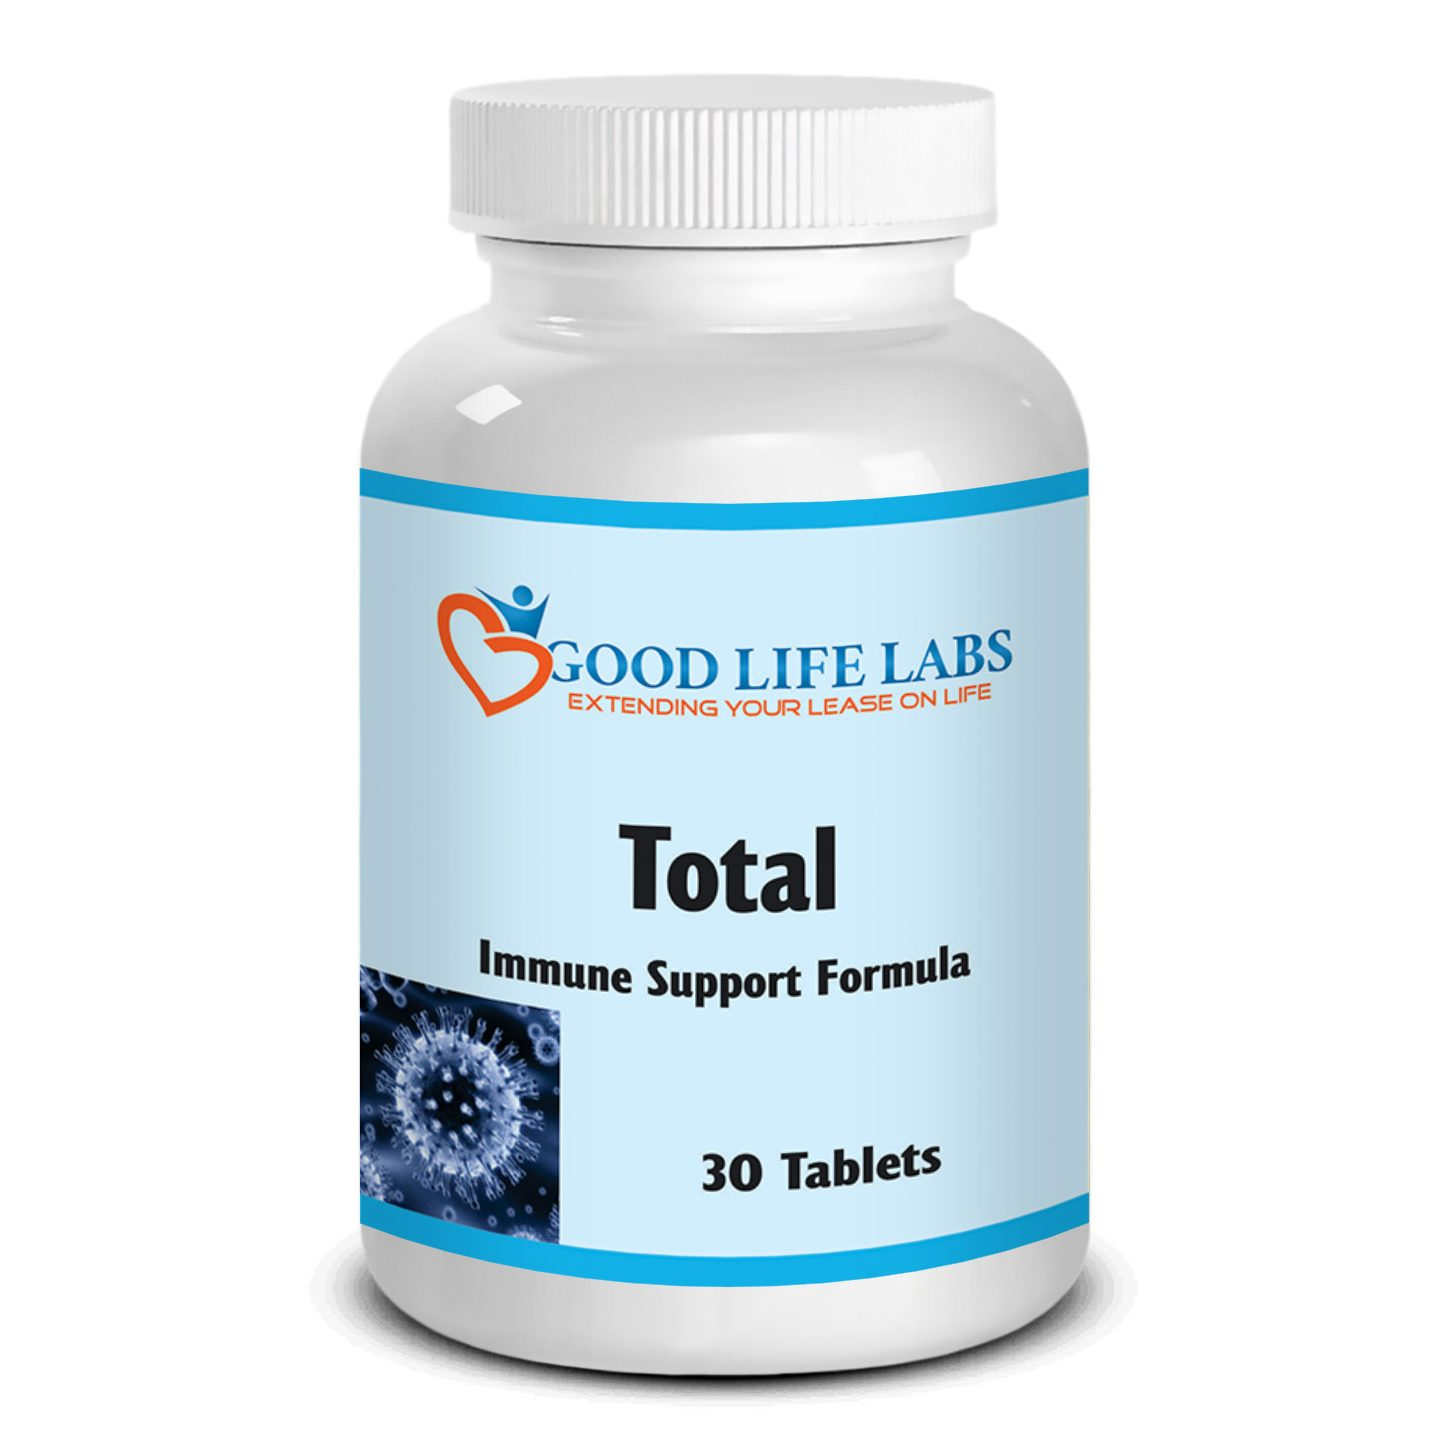 Total Immune support Good Life Labs Formula